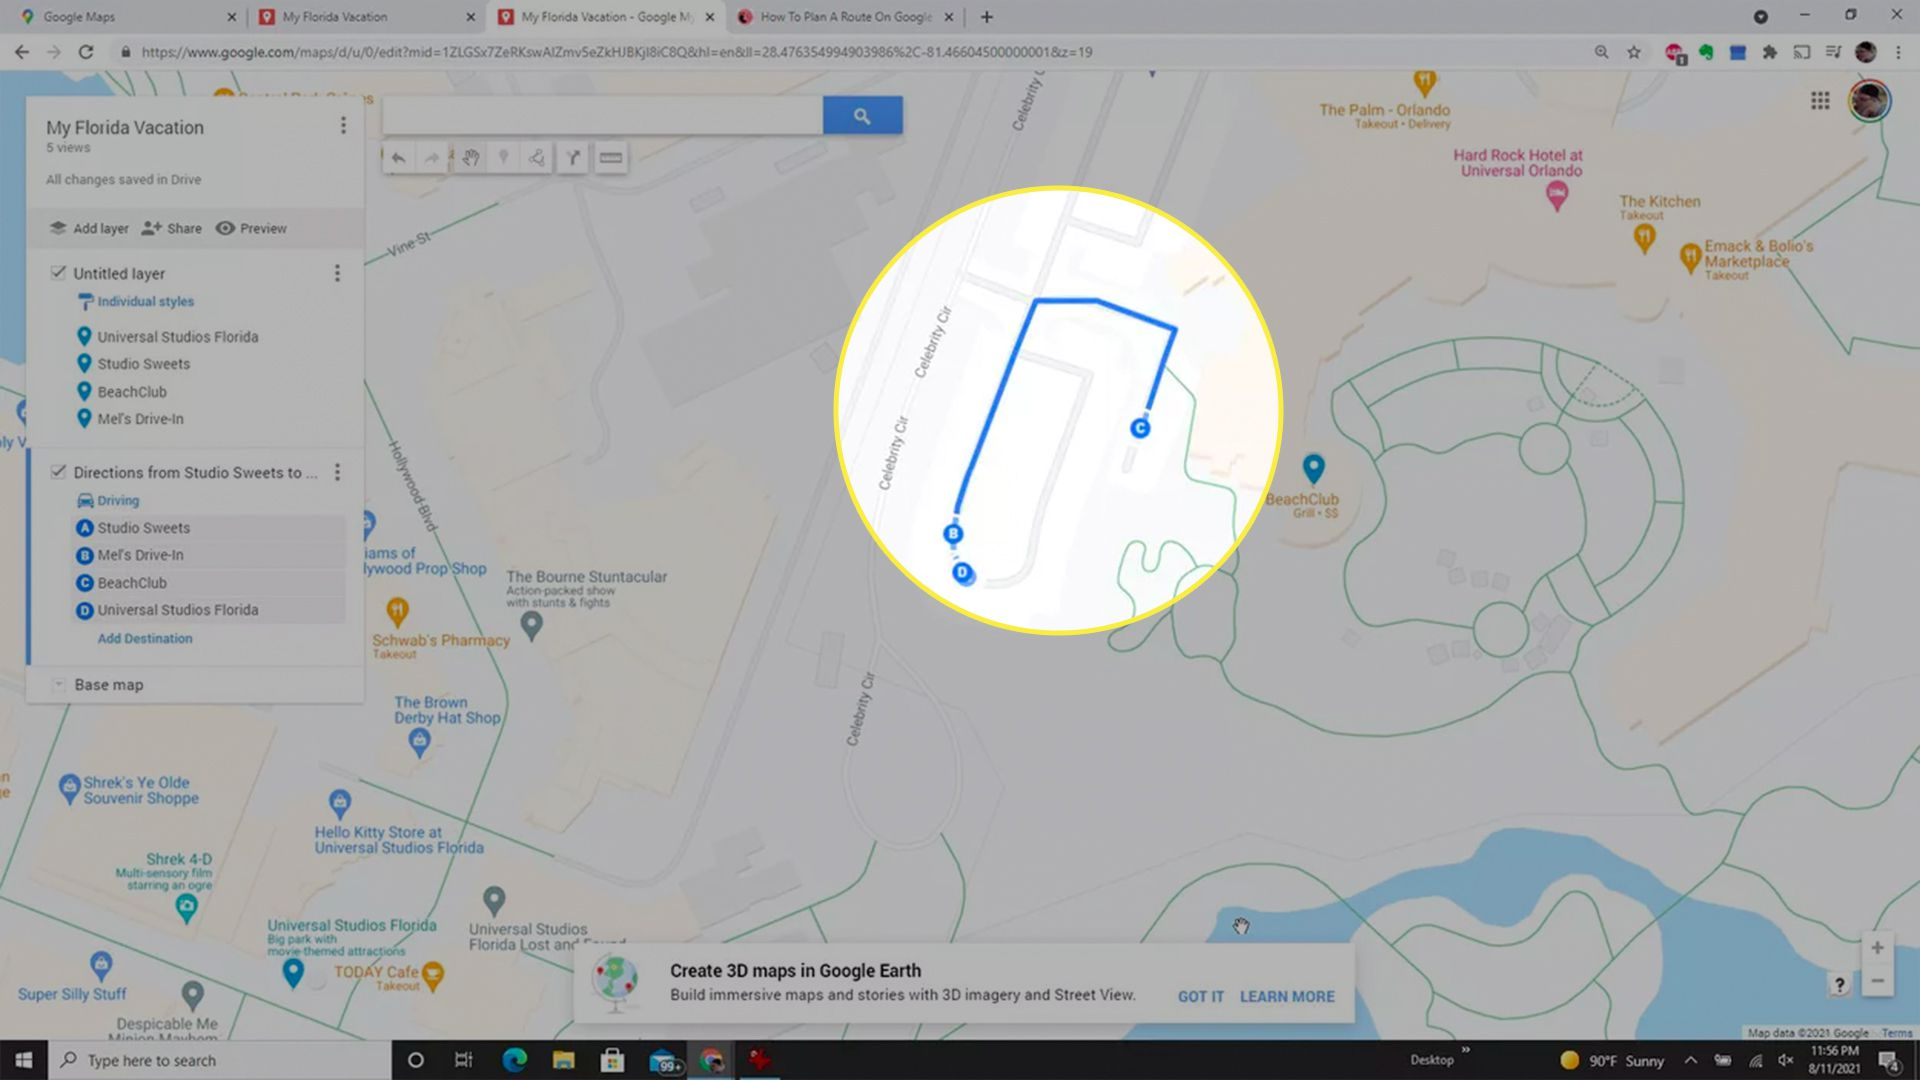 A completed driving route in a customized Google Maps map.